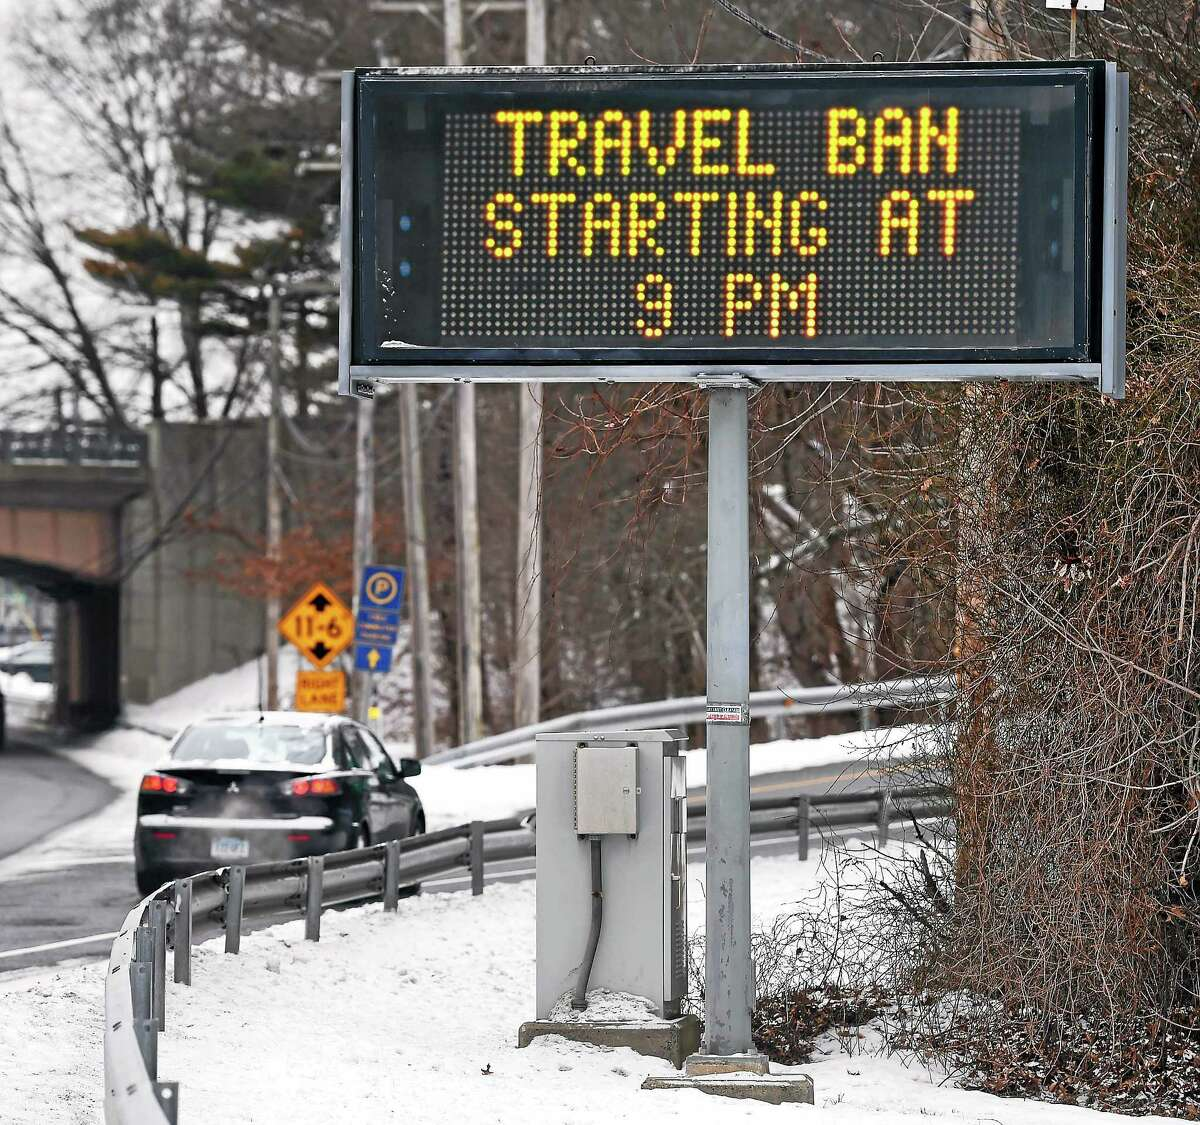 A neon sign advertises a travel ban at the entrance to the Milford Connector to Rt. 15 in Milford on 1/26/2015.